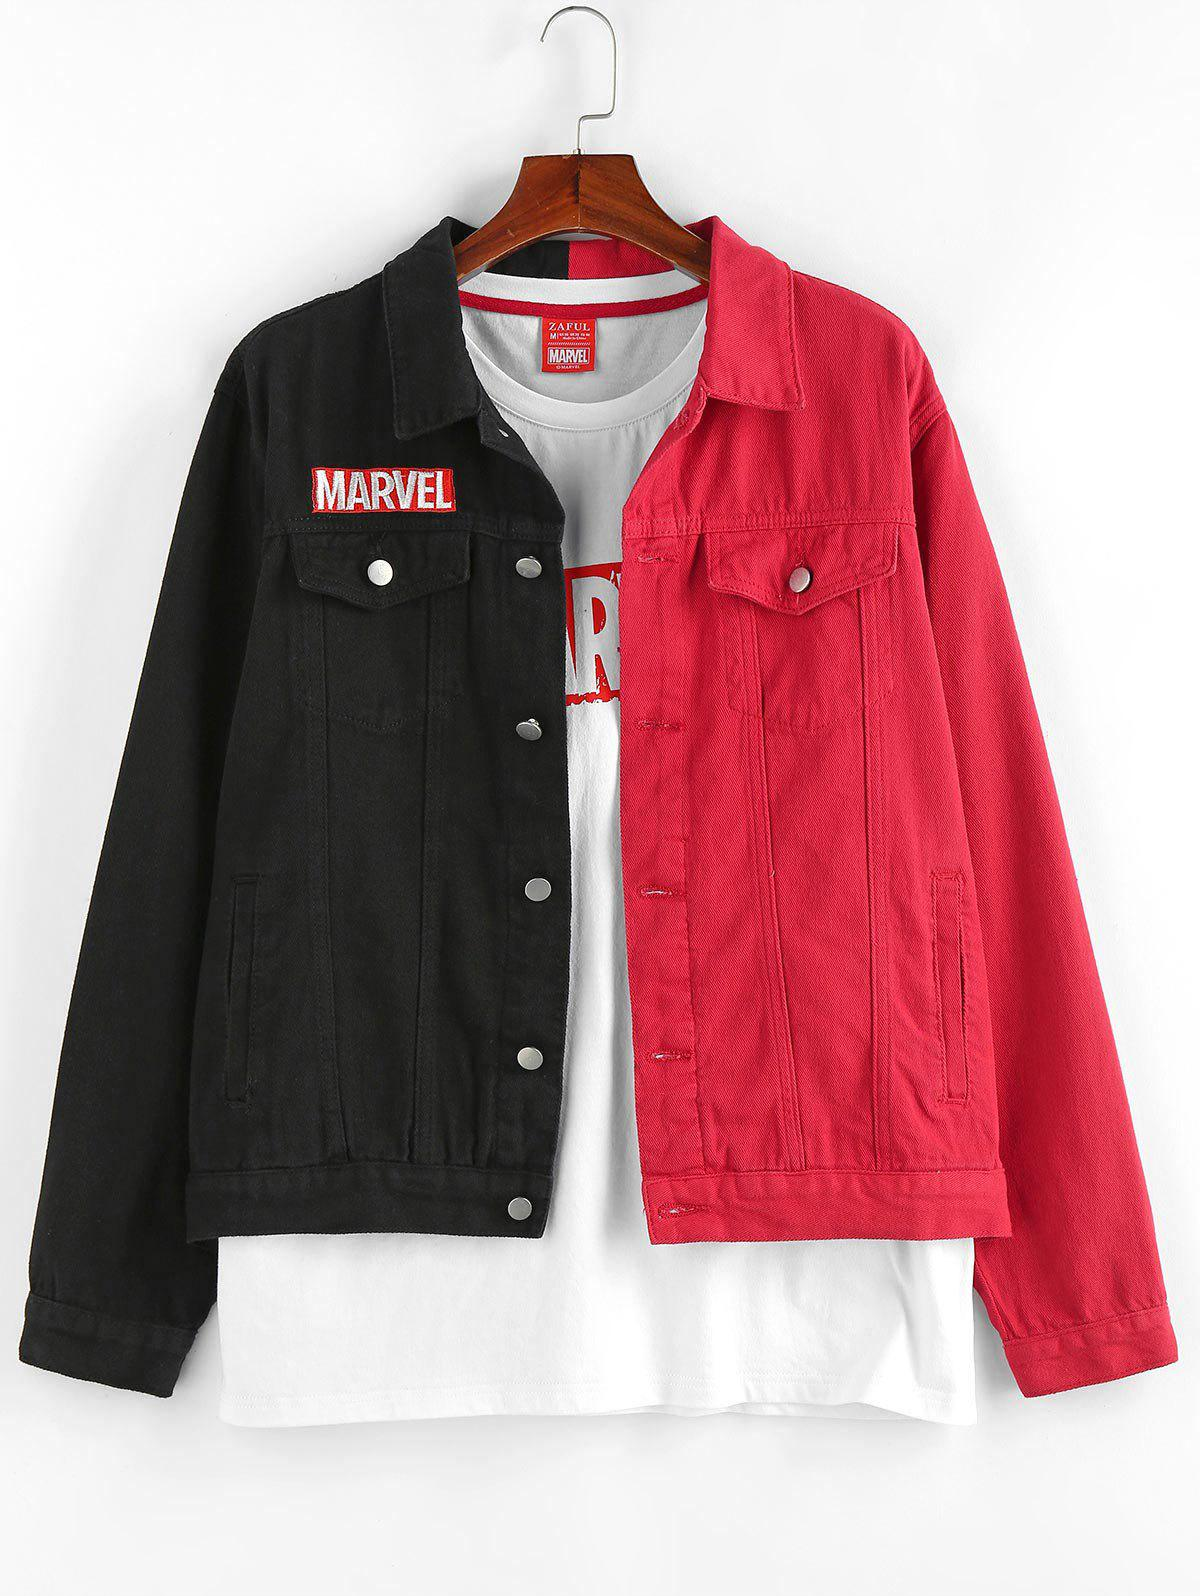 Cheap Marvel Spider-Man Embroidery Colorblock Jean Jacket